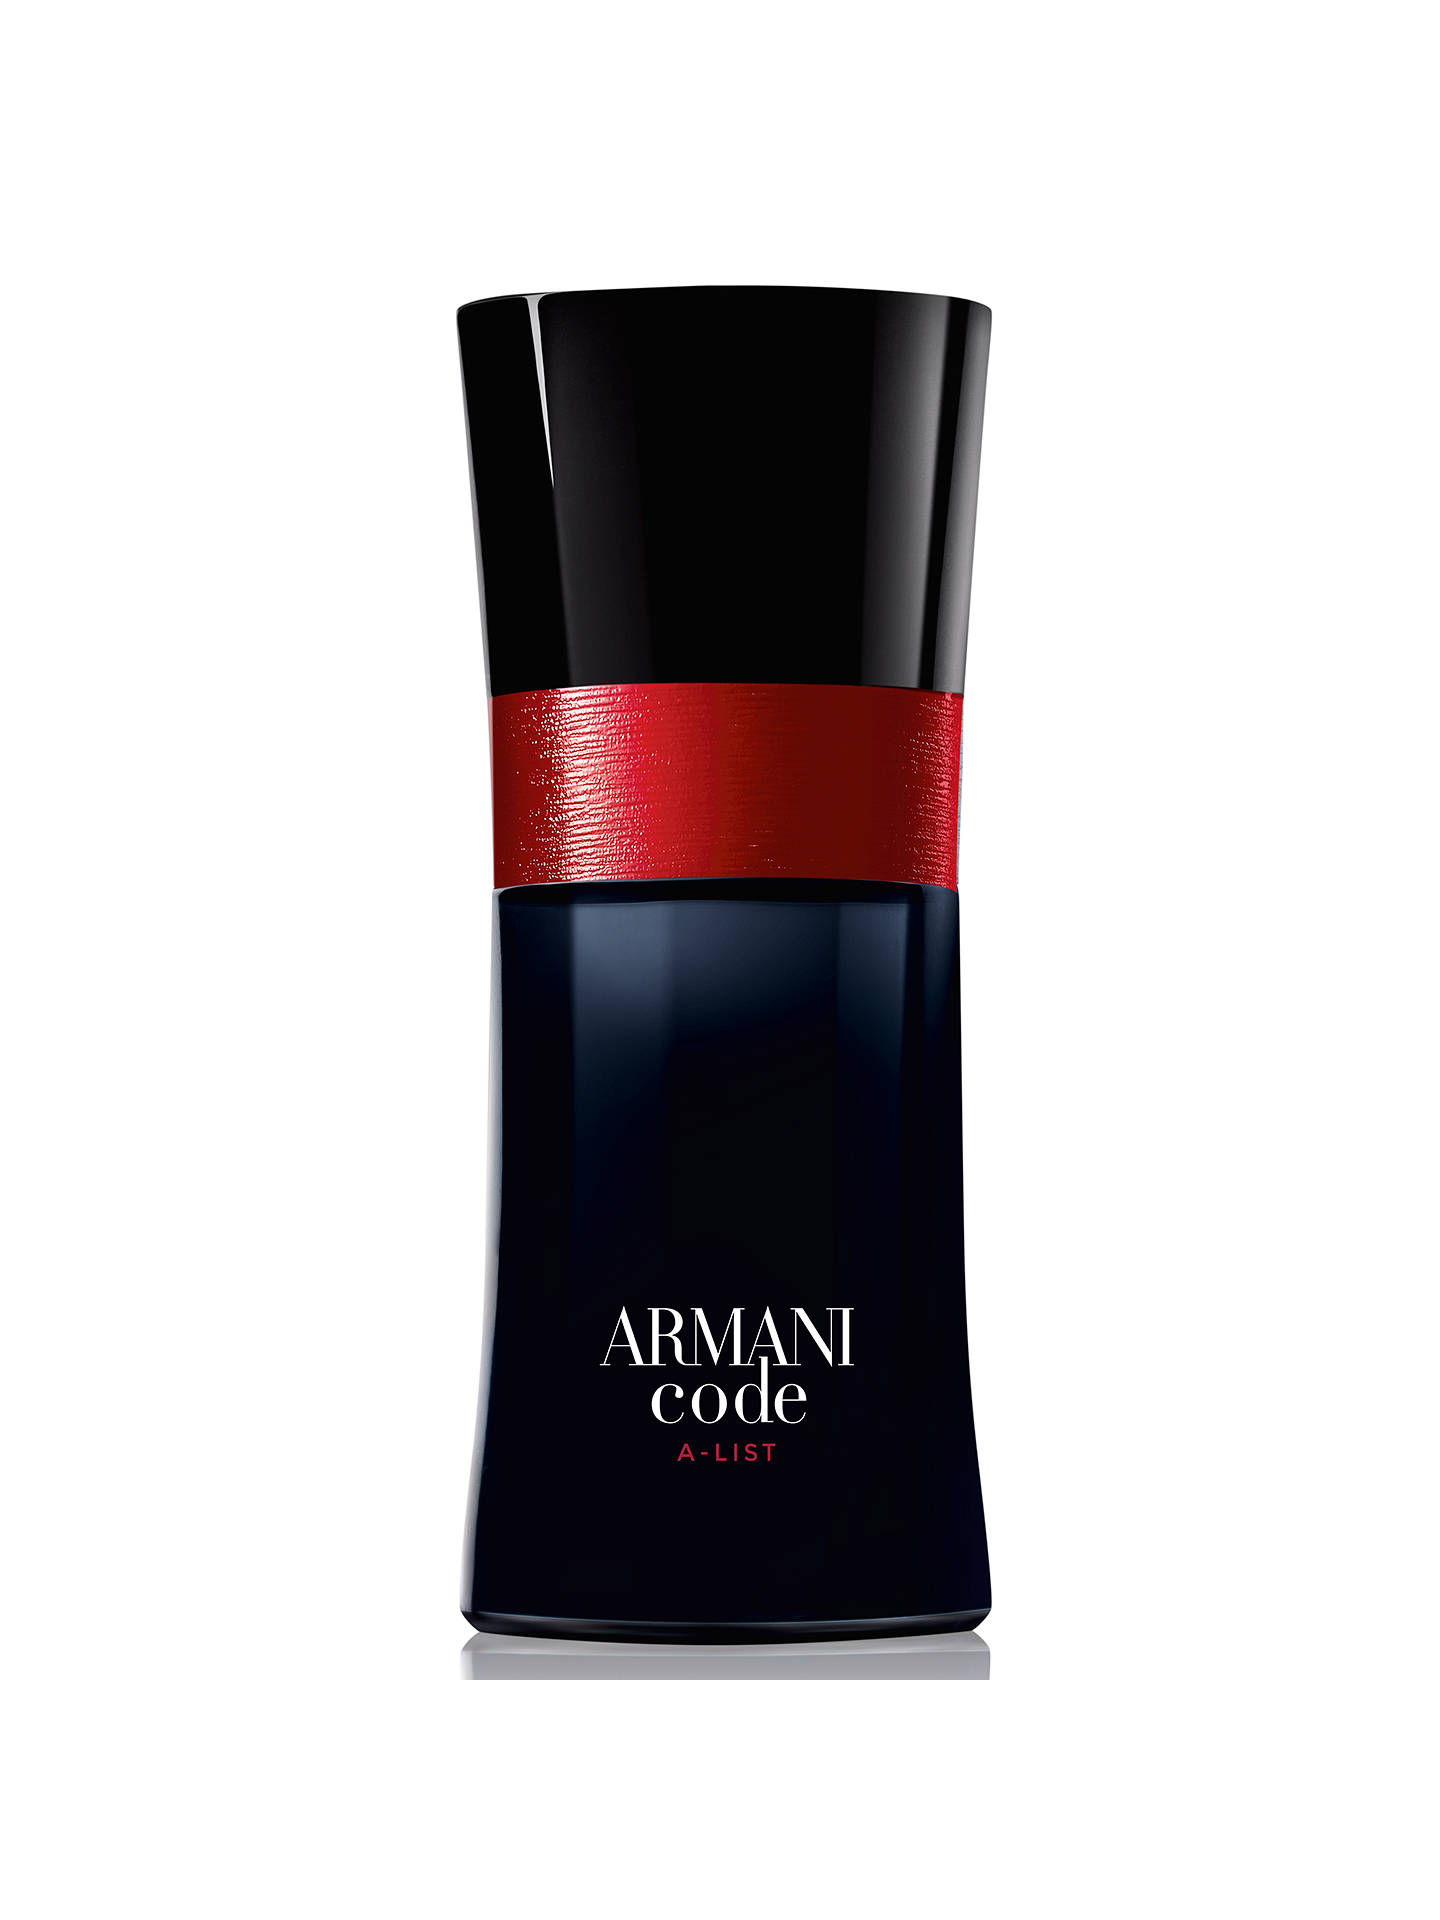 531d3492a1b8 Buy Giorgio Armani Code A-List For Men Limited Edition Eau de Toilette,  50ml ...